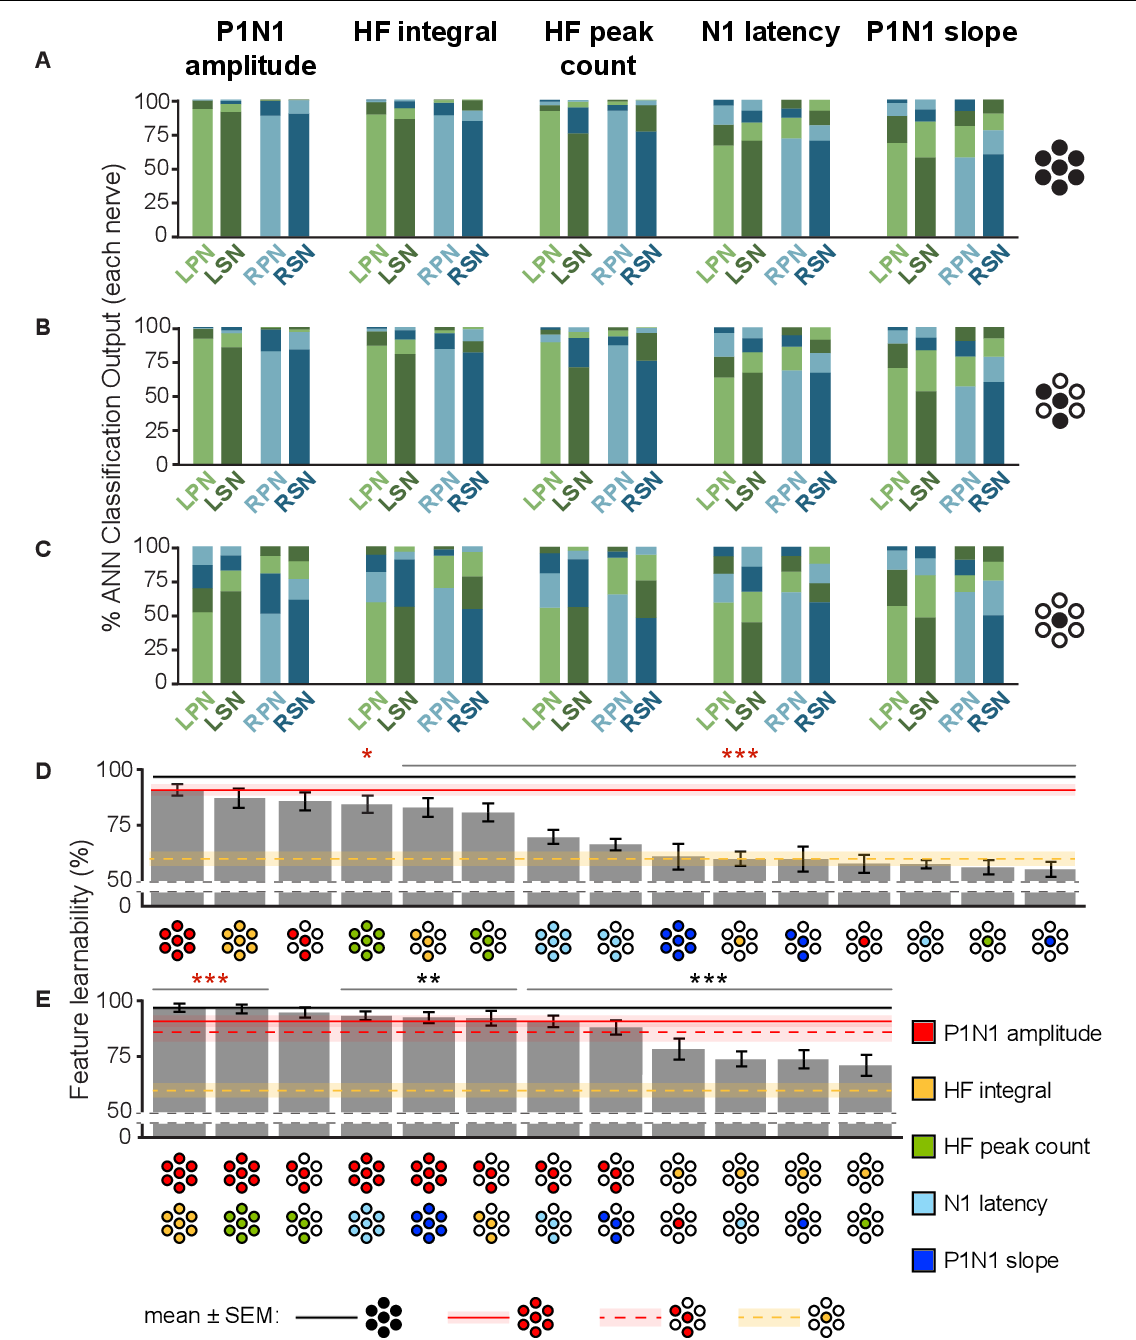 FIGURE 4   Feature-learnability of individual, and combinations of signal features generated from all electrodes, best three electrodes, and best single electrode. The mean classification accuracy for each nerve using the WIA approach (Figure 2A) generated from individual SFs are shown when data was quantified from: (A) all electrodes (e{1–7}), (B) the top three performing electrodes (e{1, 4, 5}) and (C) best electrode (e4). Schematics to the right of graphs show the electrodes from which SFs were quantified (as per Figure 3B insert). (D) Feature-learnability for each SF over combinations of electrodes (all, e{1–7}; best 3, e{1, 4, 5}; best 1, e4) are ranked from highest to lowest (left to right). Schematics for each bar indicate the electrodes (filled circles, as per Figure 3B insert) from which SFs were quantified (colors indicate respective SF as per the figure key). (E) Same as (D), but each bar represents the mean feature-learnability achieved using the best single SF for each electrode combination, with the addition of one of each of the other SFs. Black horizontal line with gray ghosting indicates the mean ± SEM feature-learnability of the benchmark (e{1–7}); red lines and ghosting indicates mean ± SEM feature-learnability of P1N1 amplitude/e{1, 4, 5} (dashed) and P1N1 amplitude/e{1–7} (solid); yellow-dashed lines and ghosting indicates mean ± SEM feature-learnability of HF integral/e4 alone; black asterisks indicate feature-learnability significantly lower than the benchmark (e{1–7}) and red asterisks indicate feature-learnability significantly better than P1N1 amplitude/e{1–7}. Abbreviations as per Figure 3.